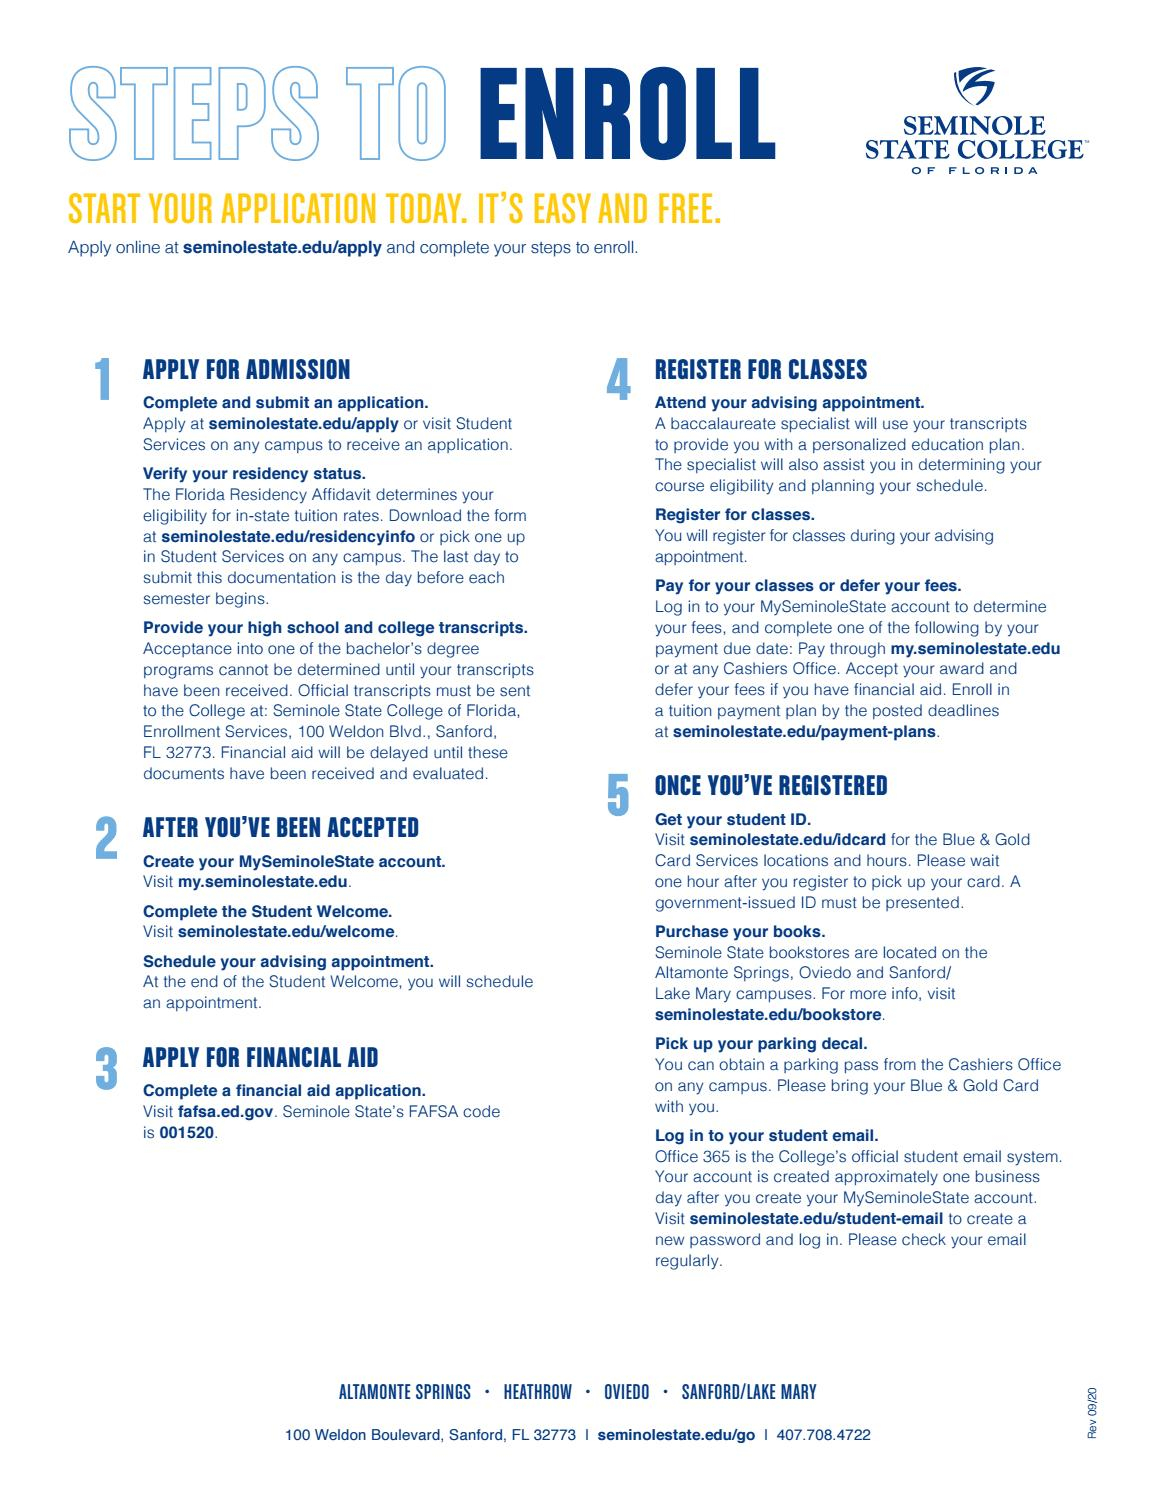 Steps to Enroll Info Sheet by Seminole State College of ...